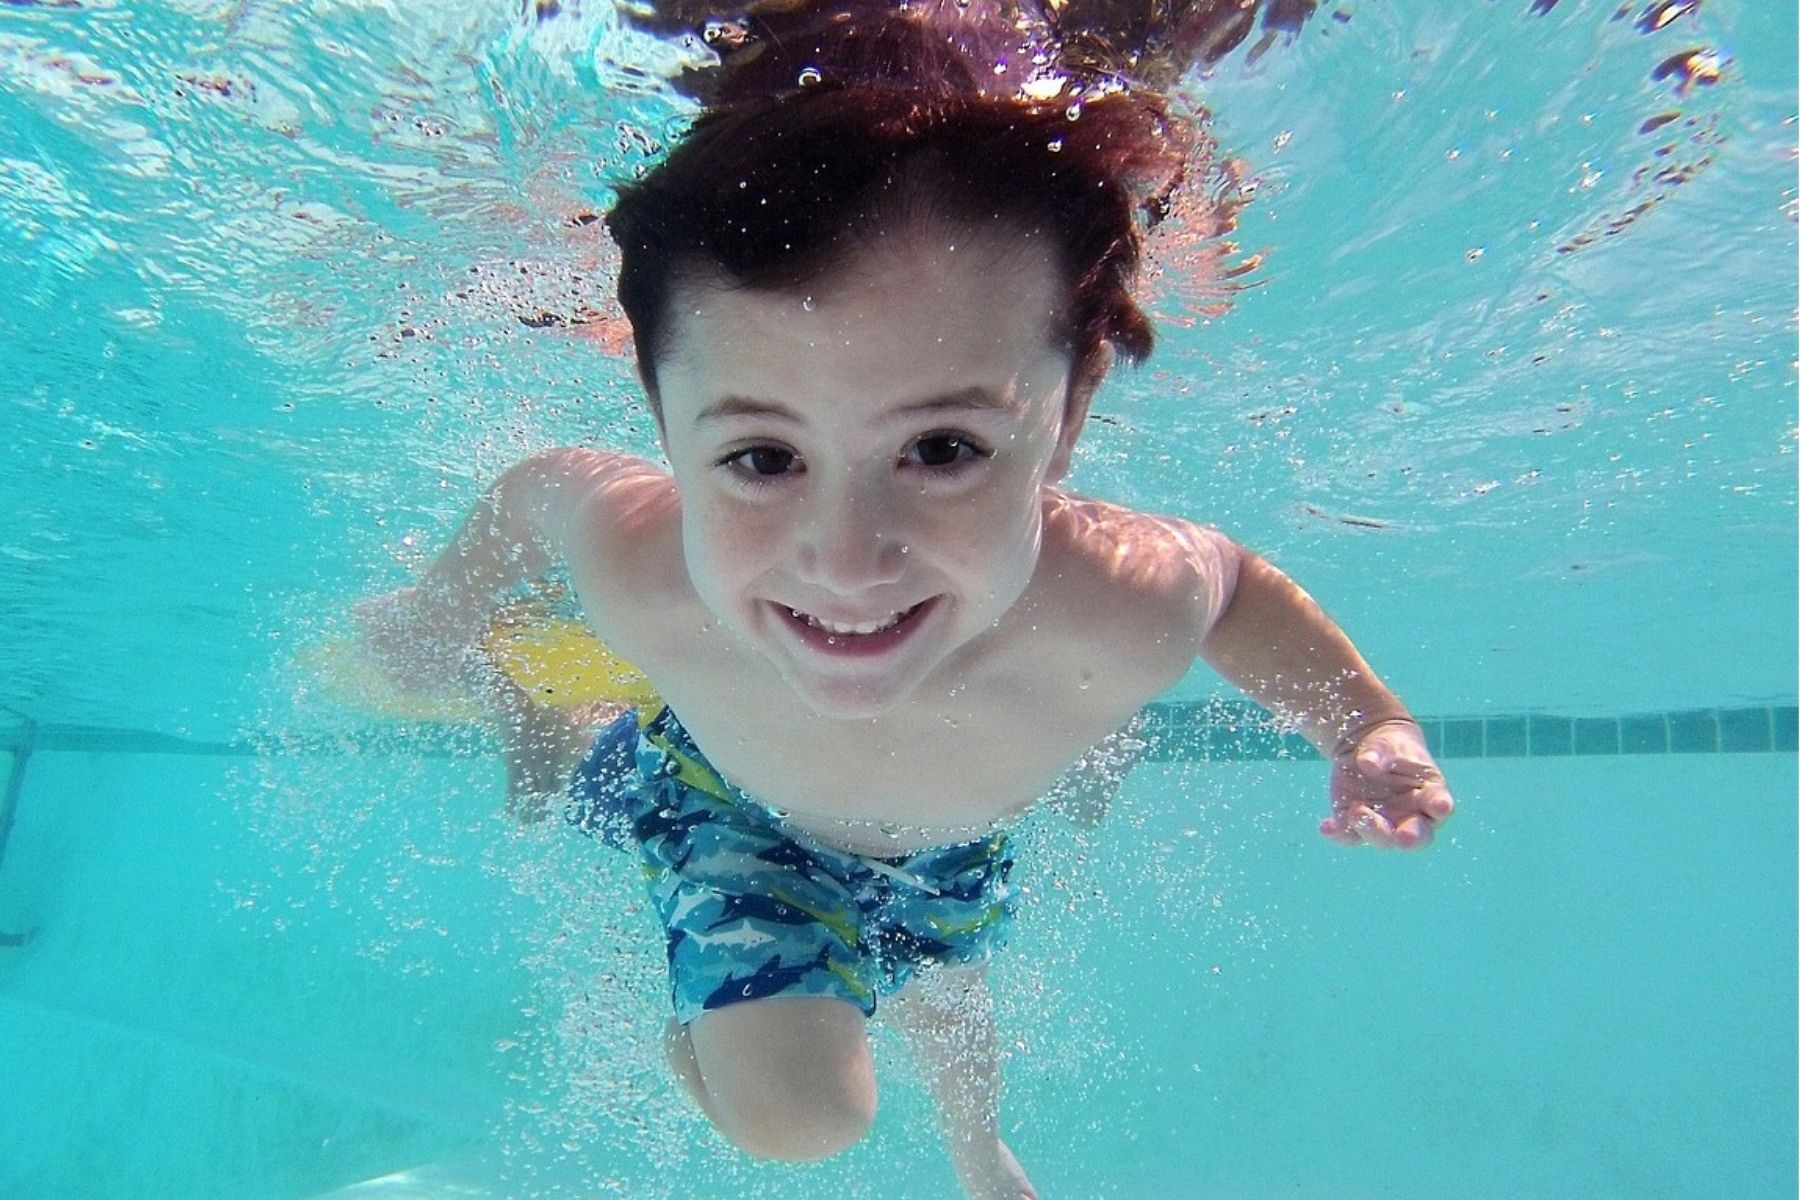 Boy swimming underwater with eyes open